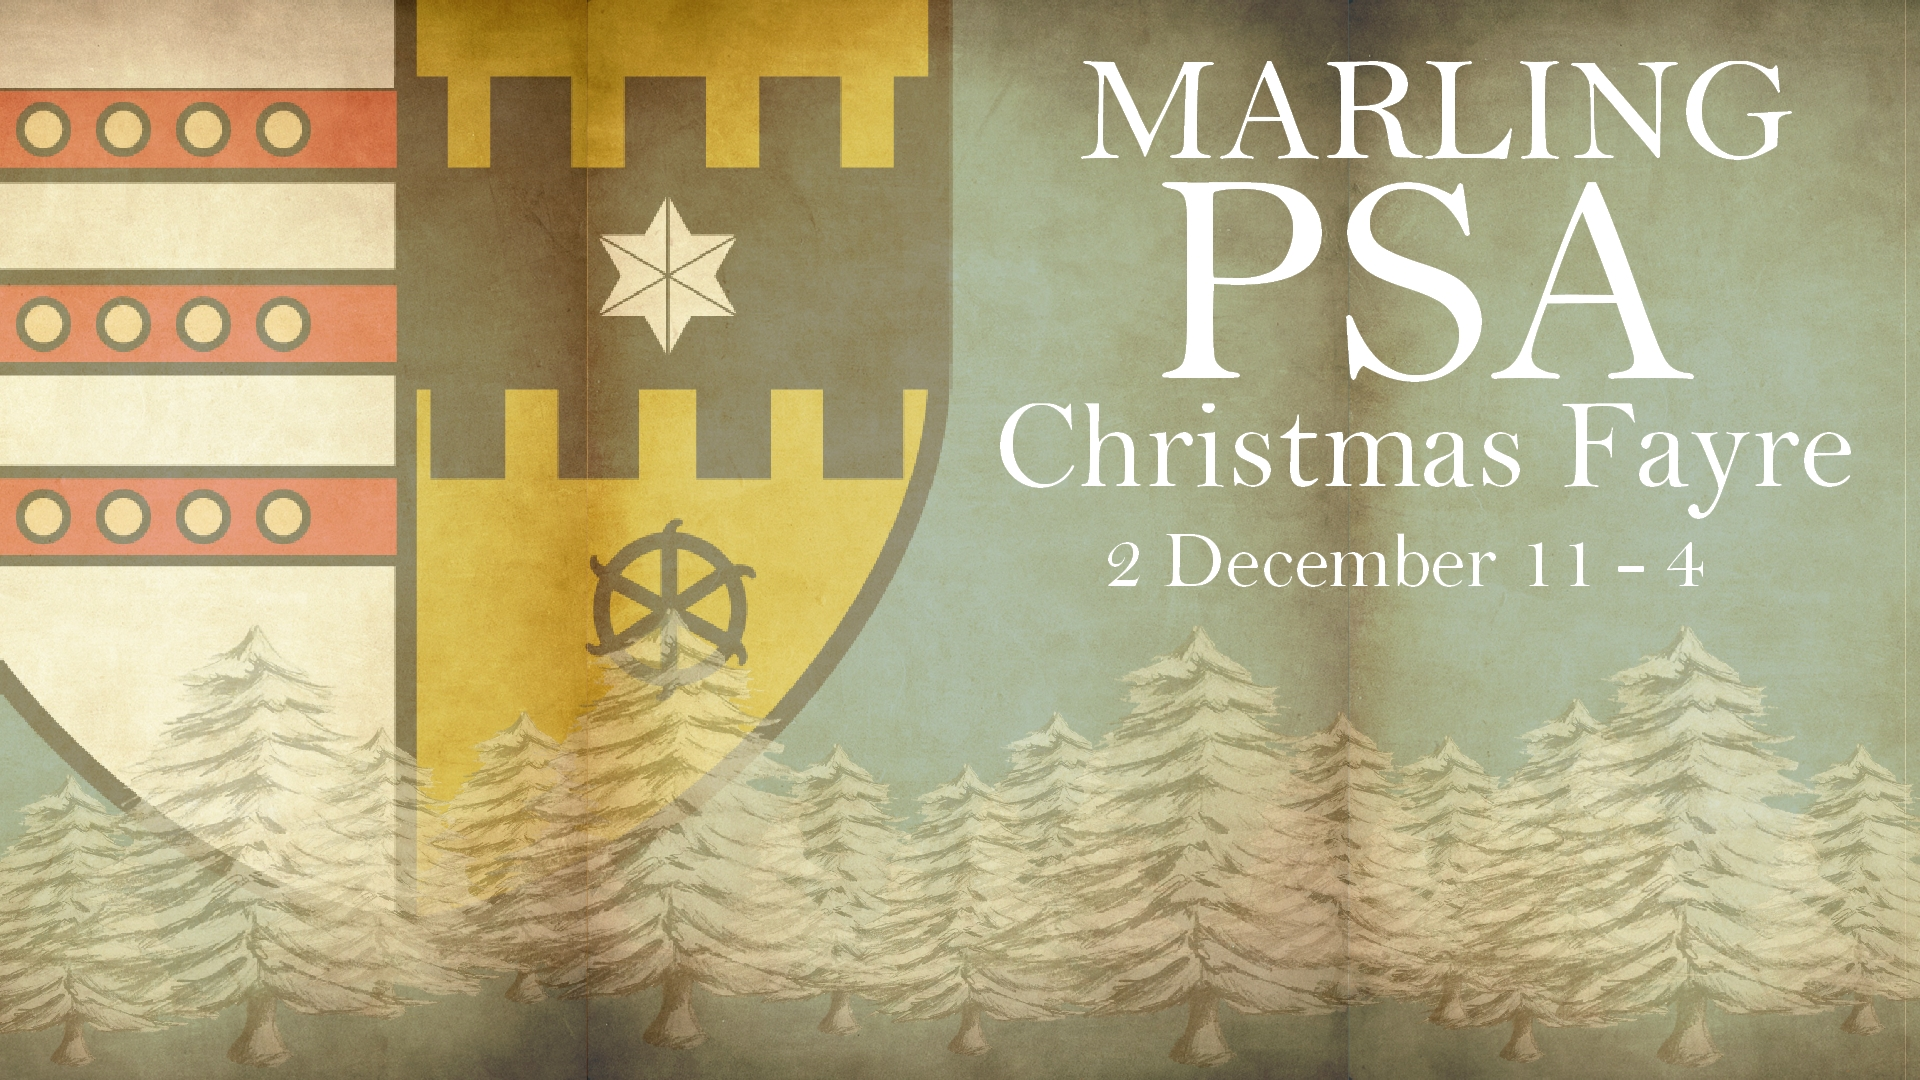 Marling School PSA Christmas Fayre